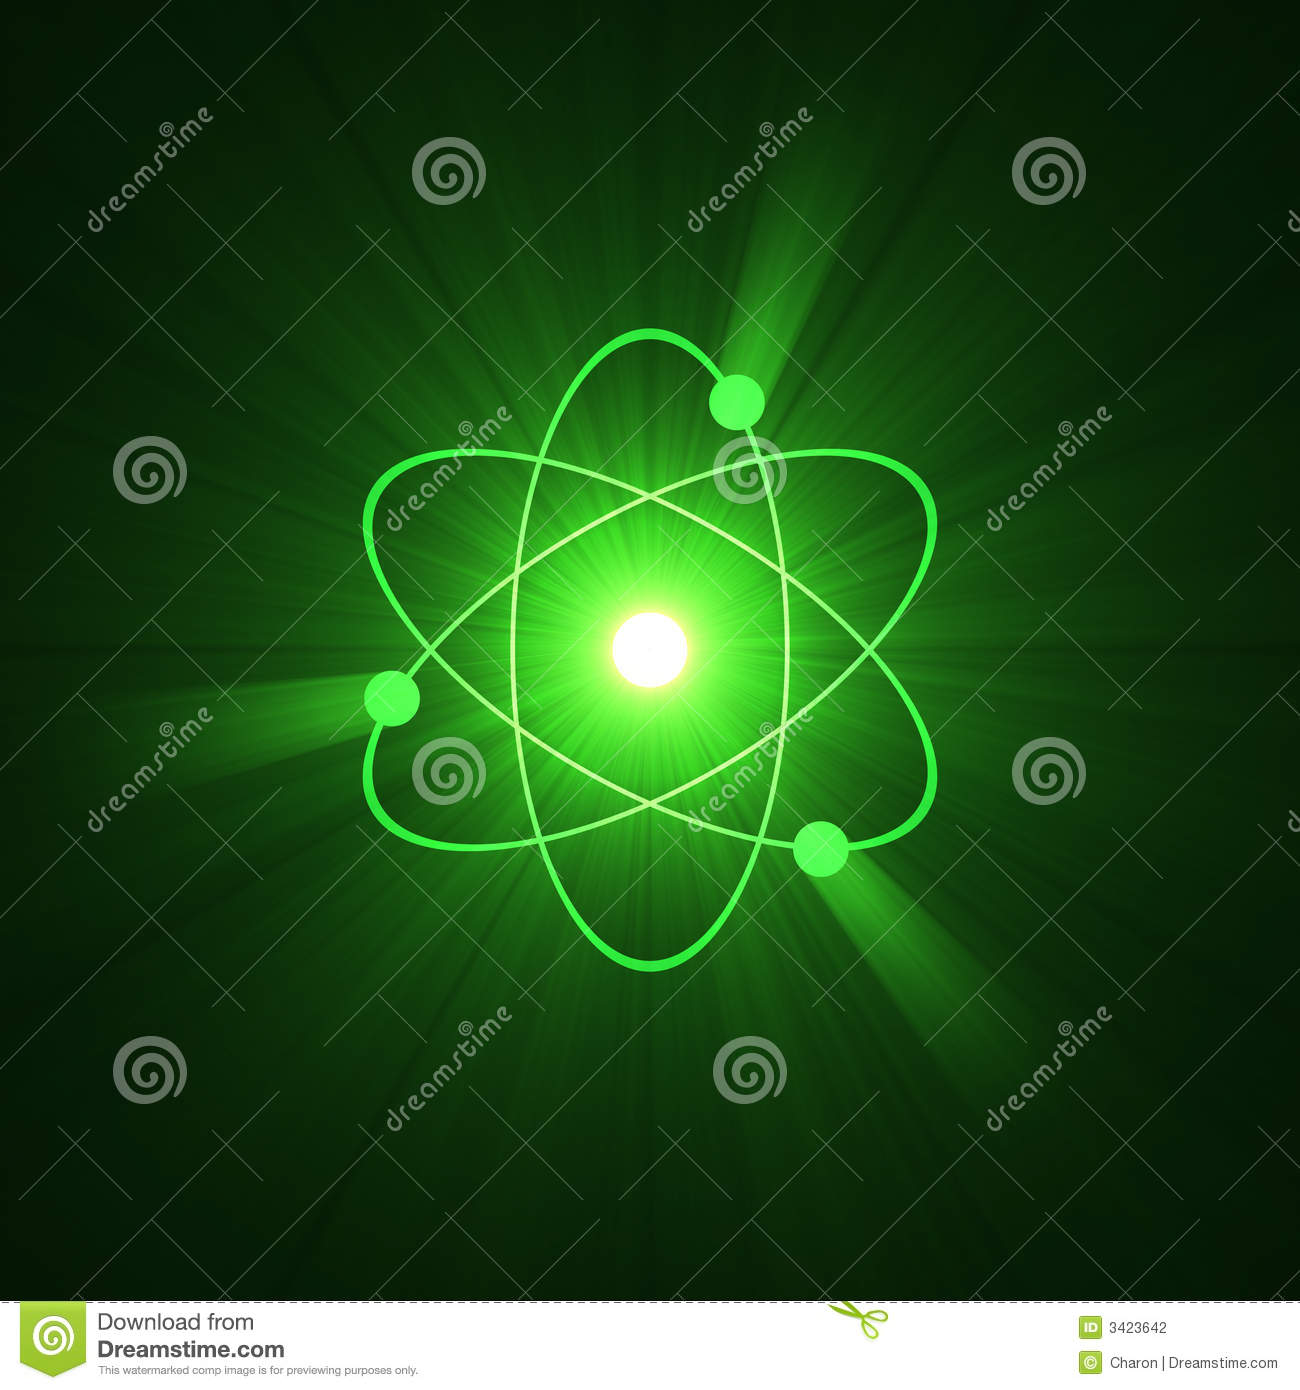 Atomic Structure Atomic sign atom structure